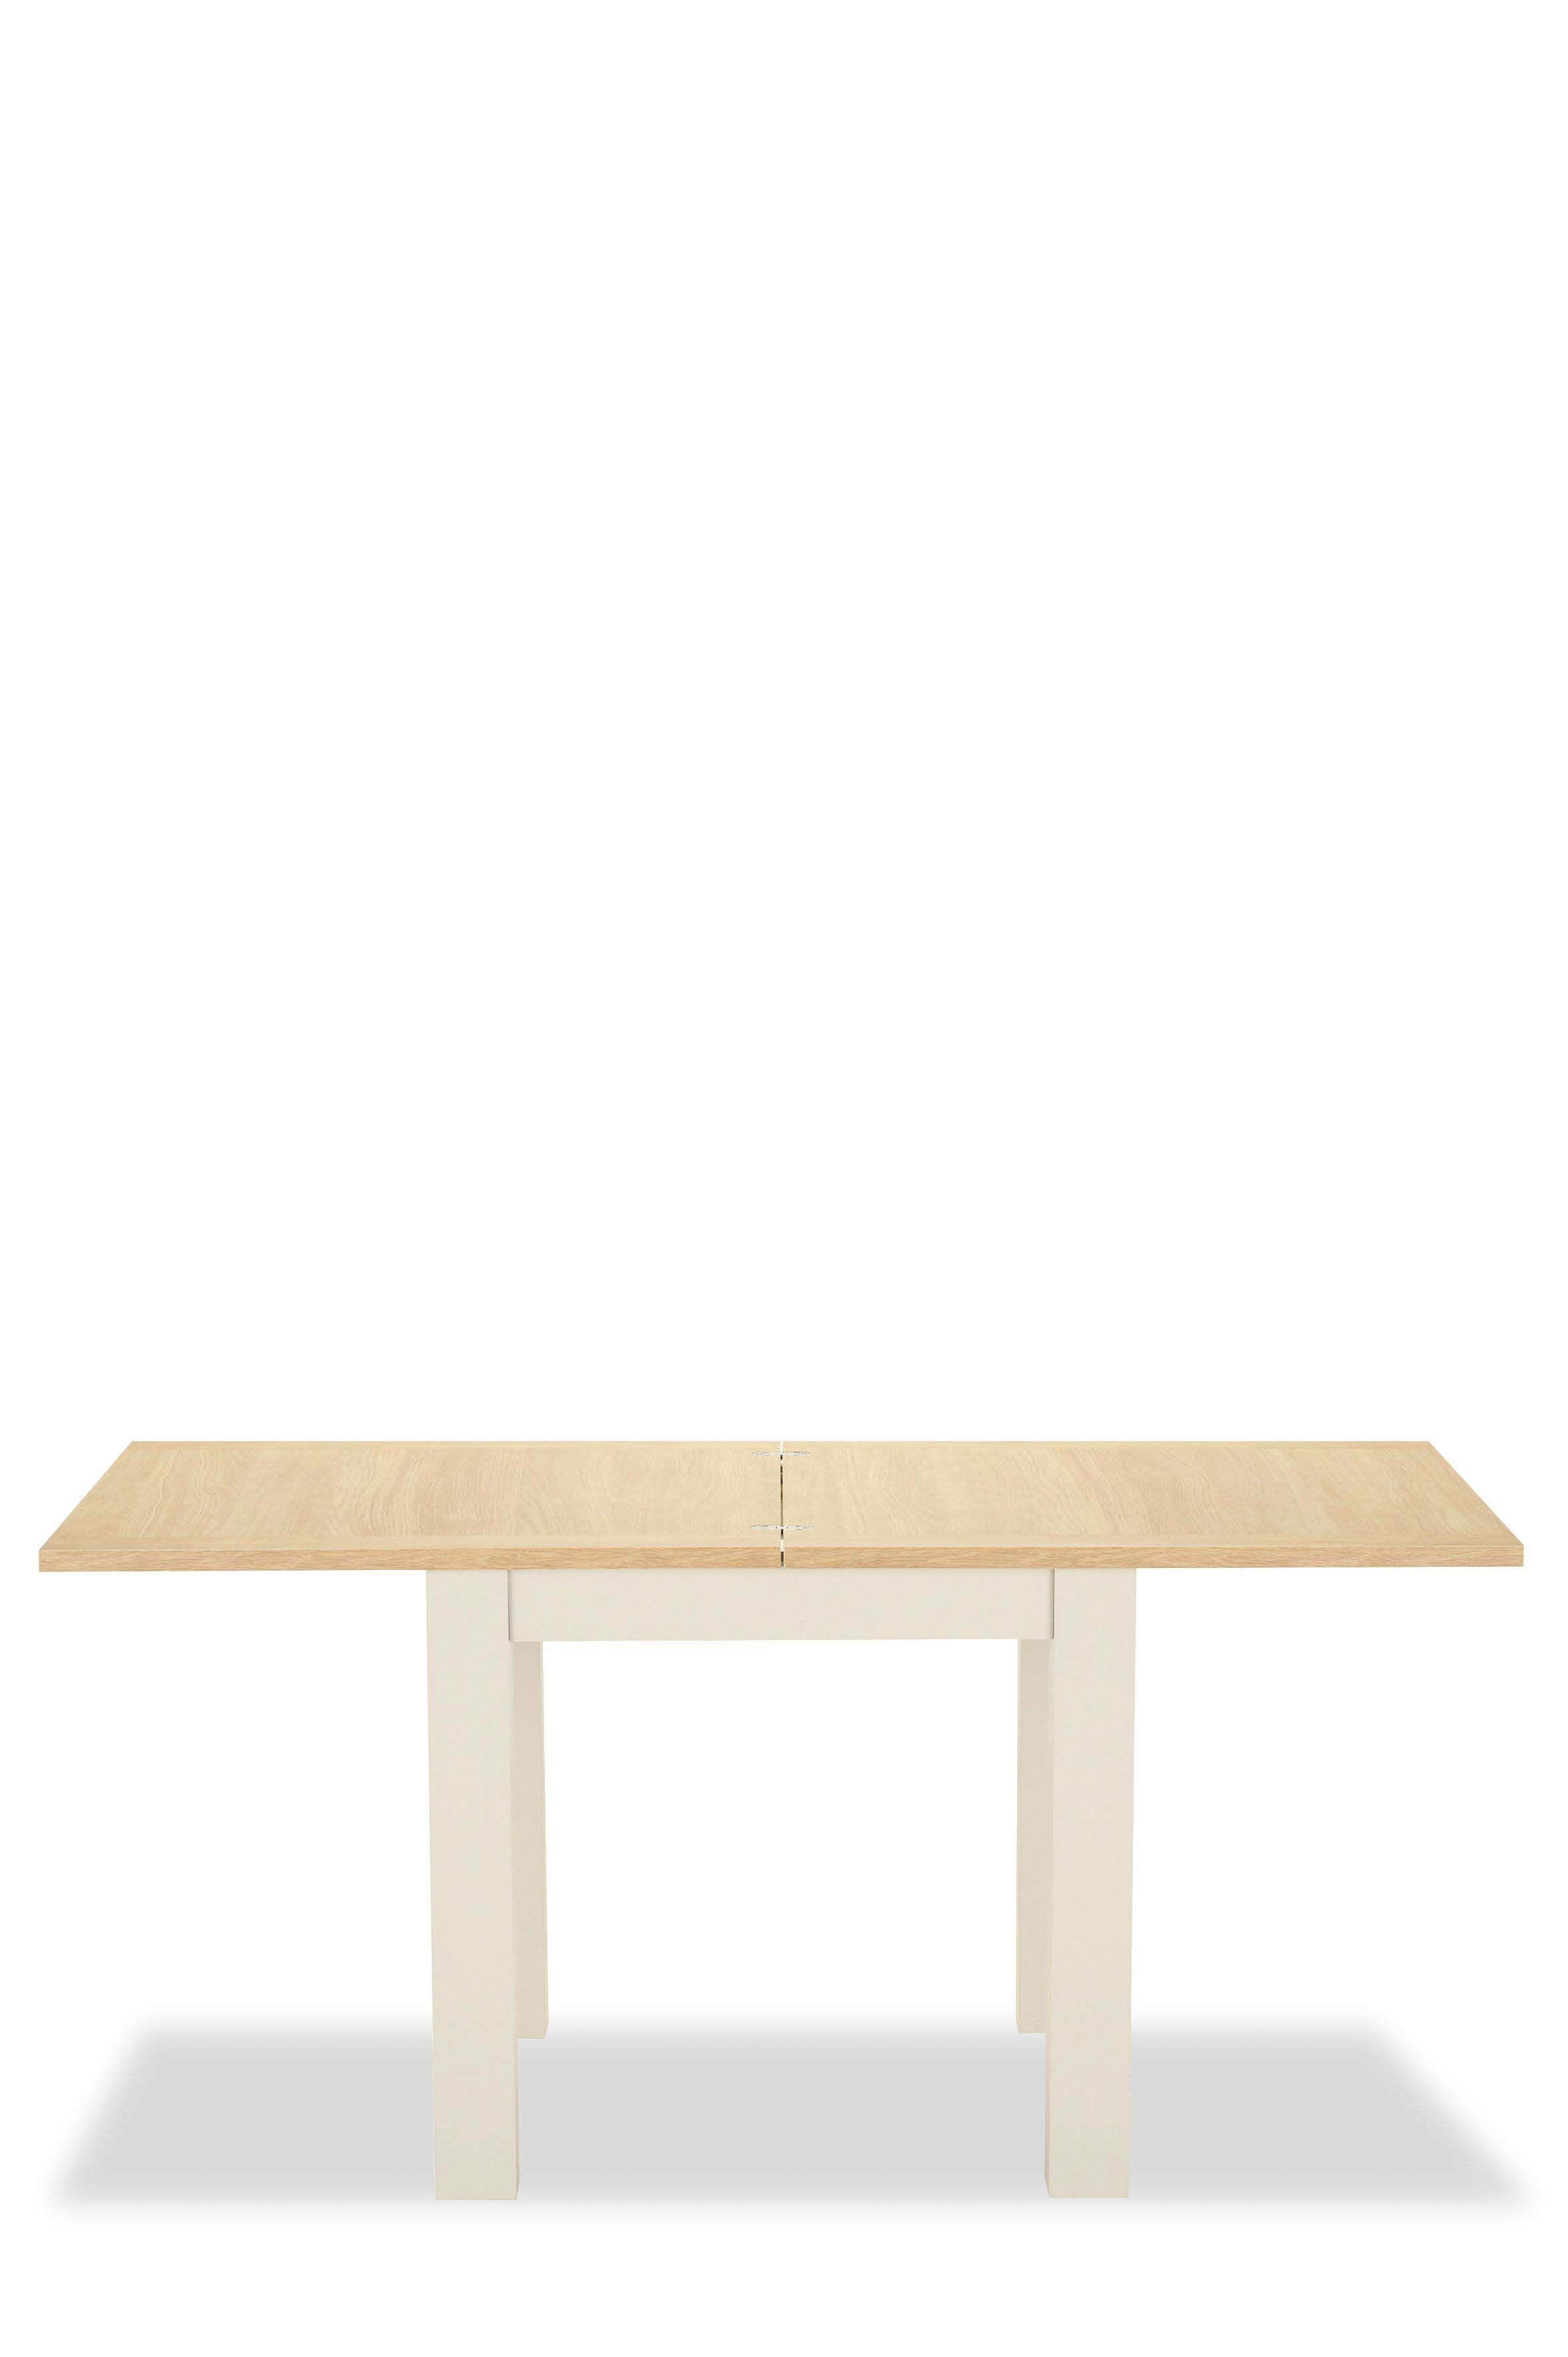 e168e2a4717 Next Malvern Oak 4-6 Seater Square To Rectangle Dining Table - Natural